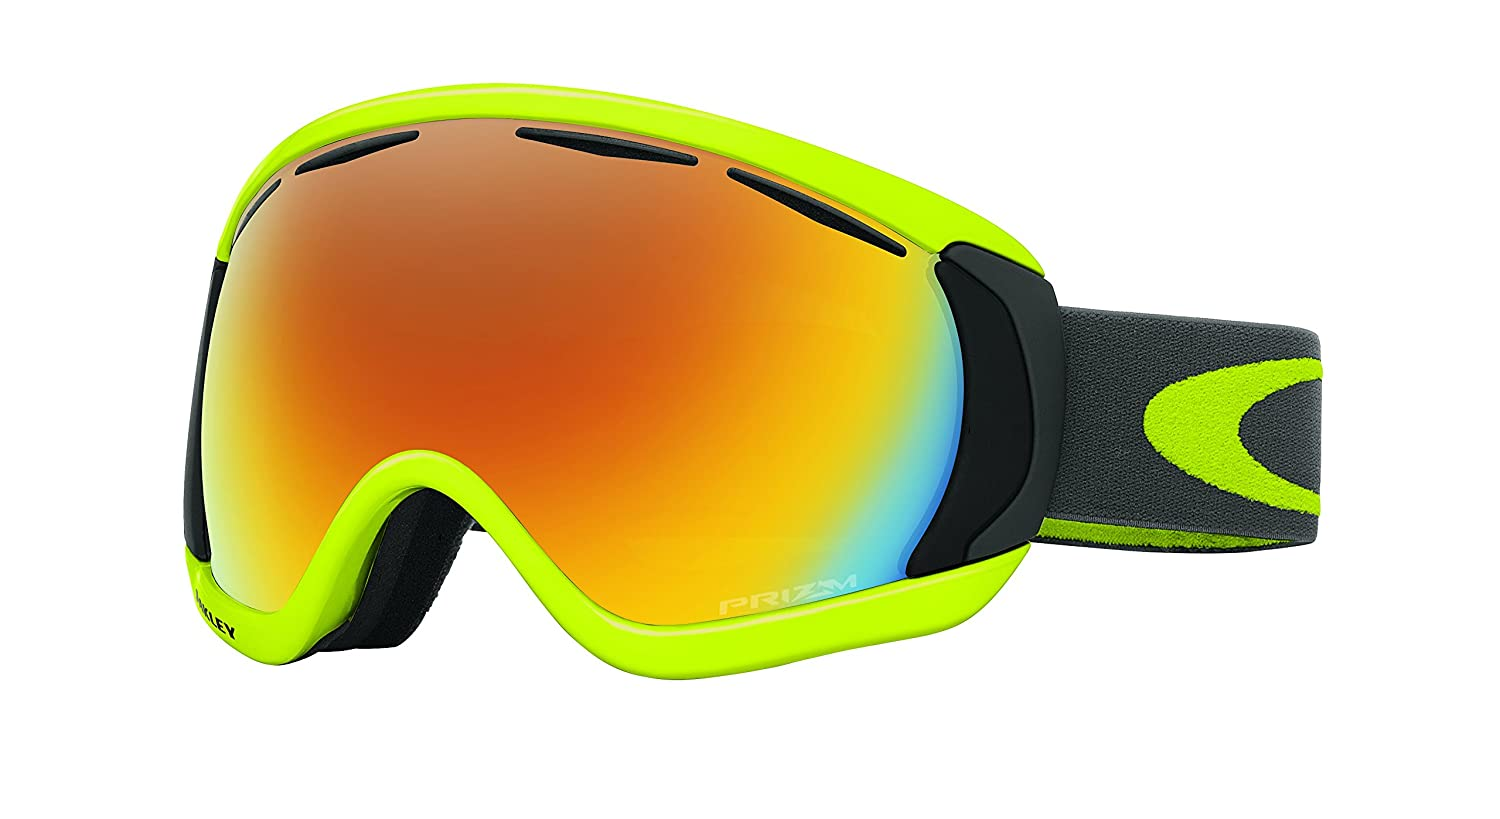 c132bacb589 Amazon.com   Oakley Canopy Adult Goggles - Citrus Iron Fire Iridium One  Size   Sports   Outdoors